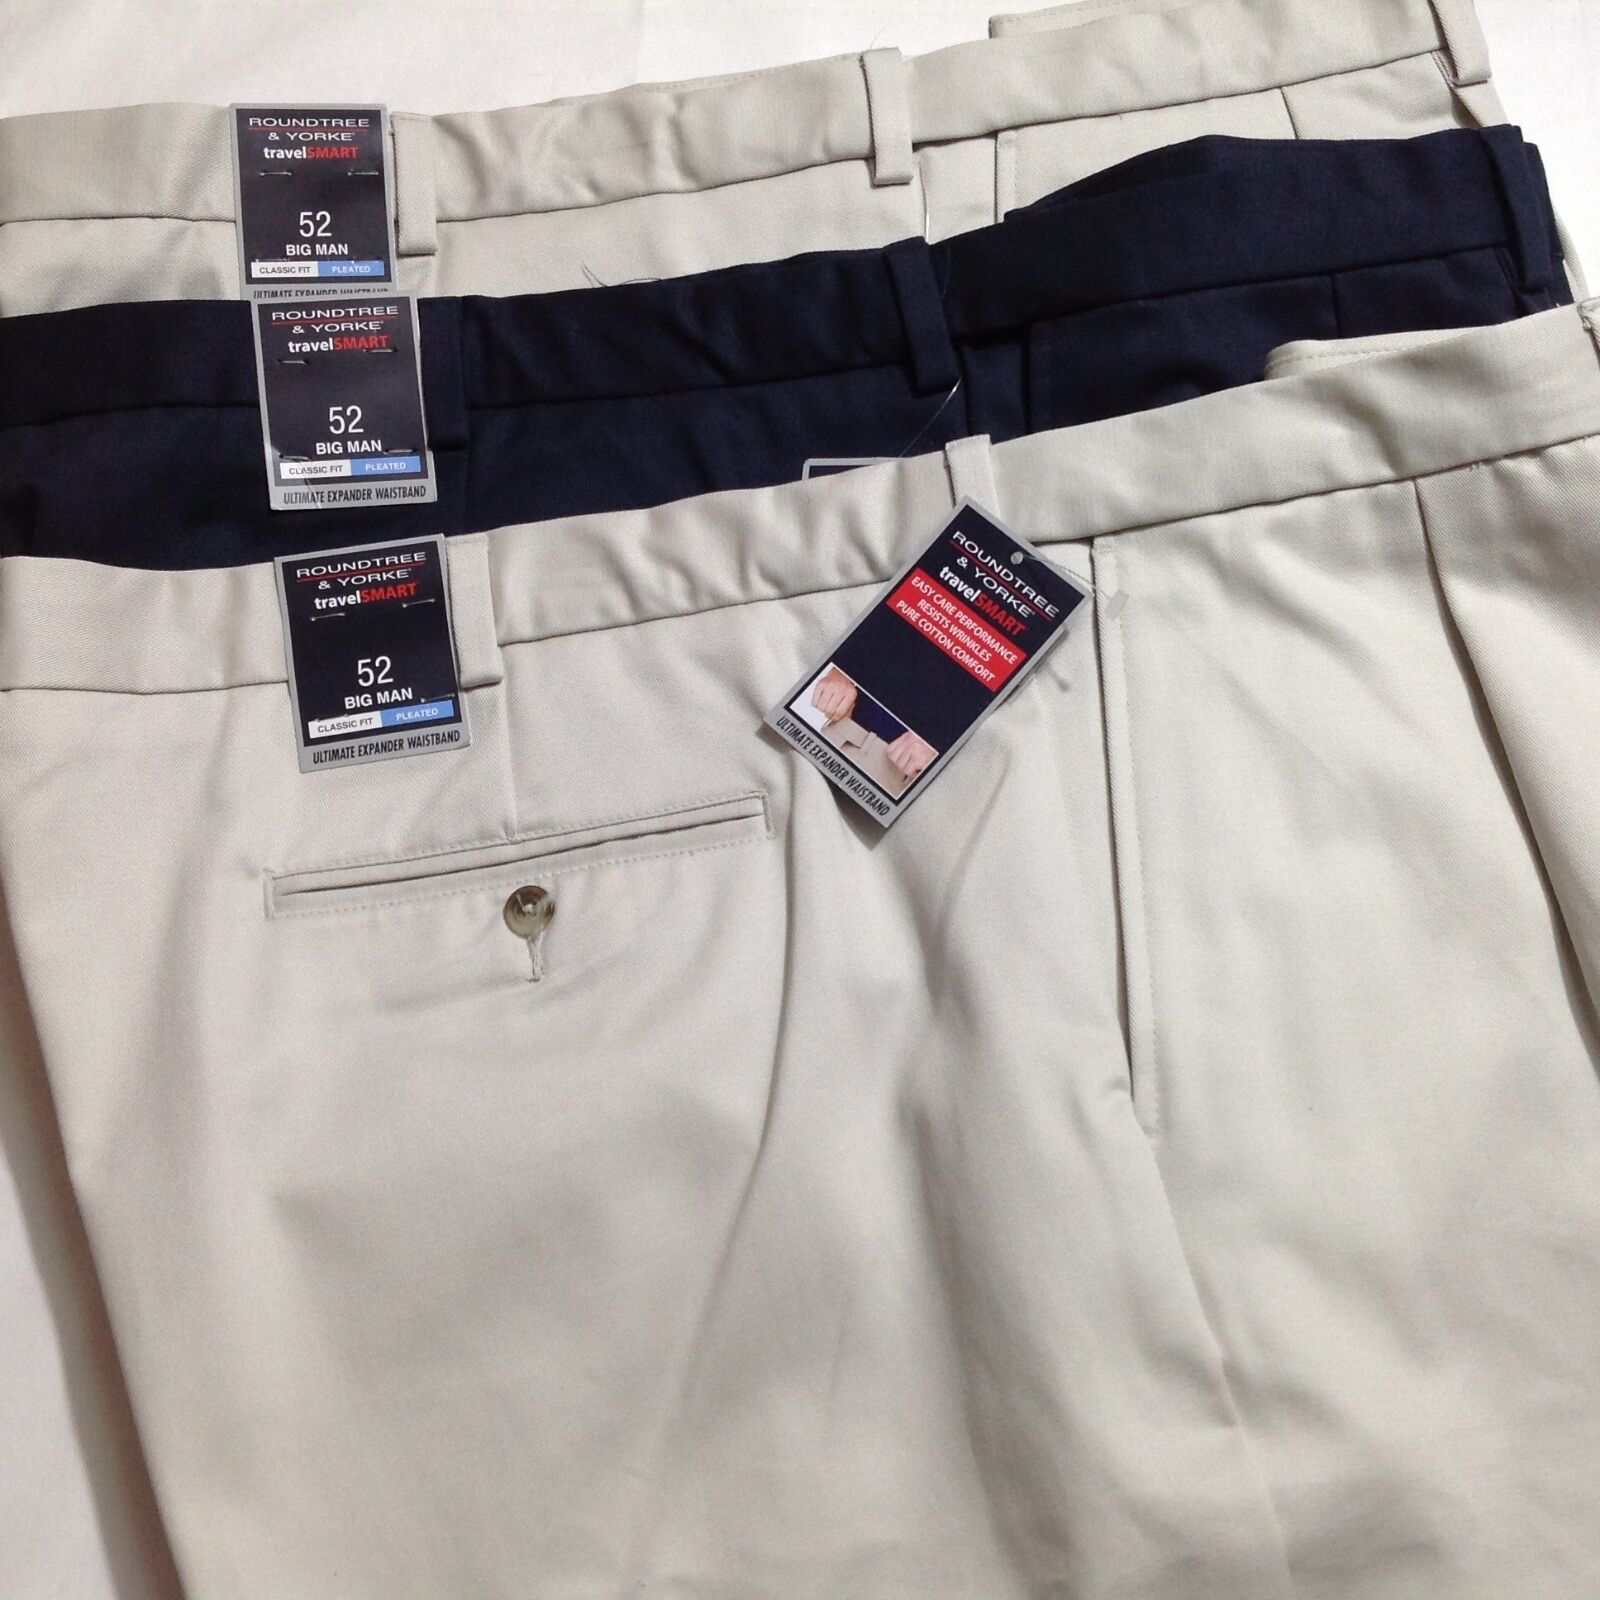 Roundtree &Yorke Men Travel Smart Shorts Pleated Expander 52 Big Lot of 3 New